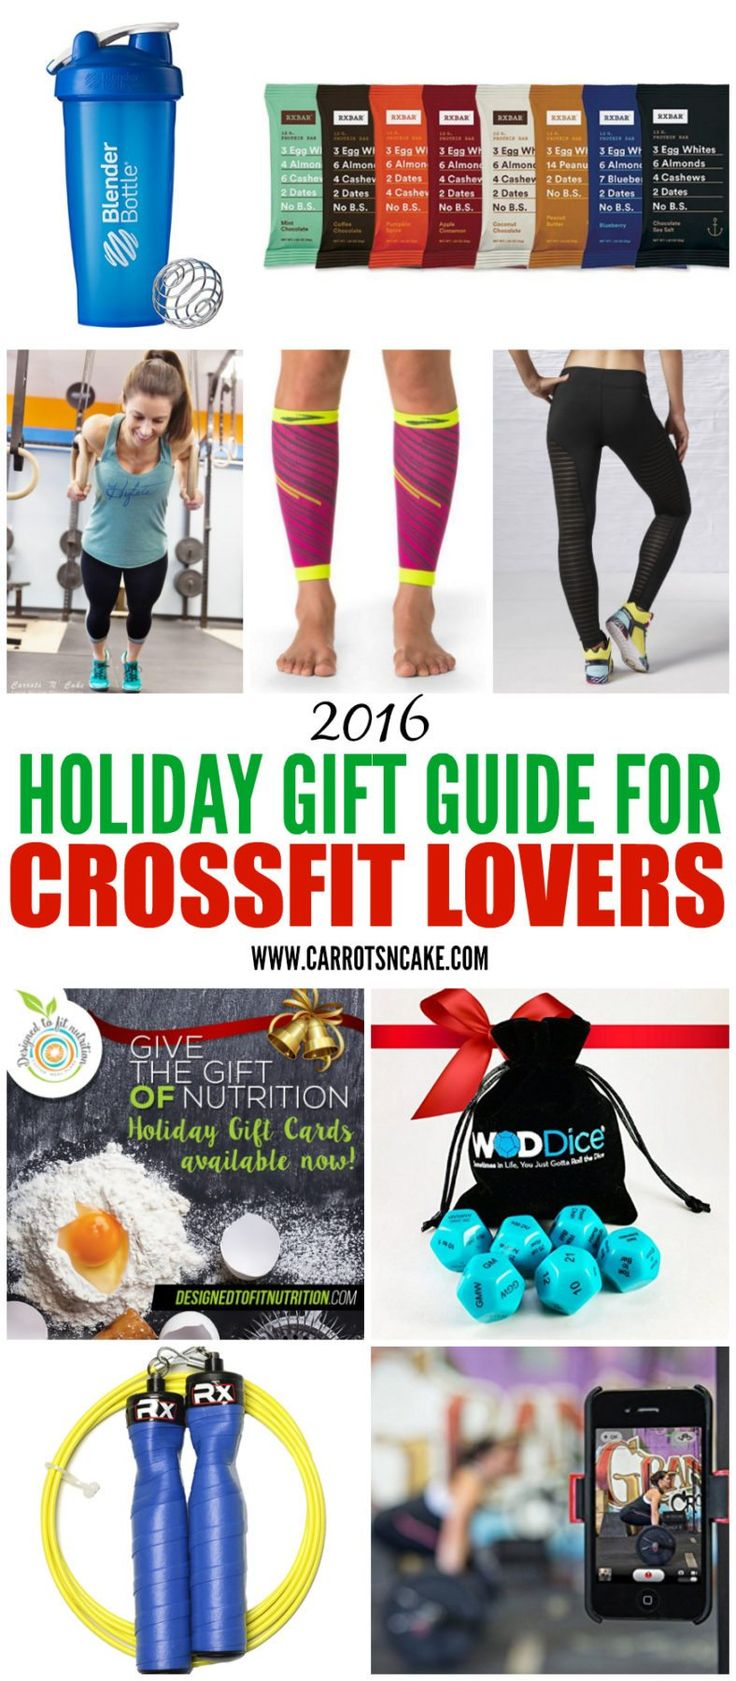 2016 Holiday Gift Guide for CrossFitters http://carrotsncake.com/2016/12/2016-holiday-gift-guide-for-crossfitters.html